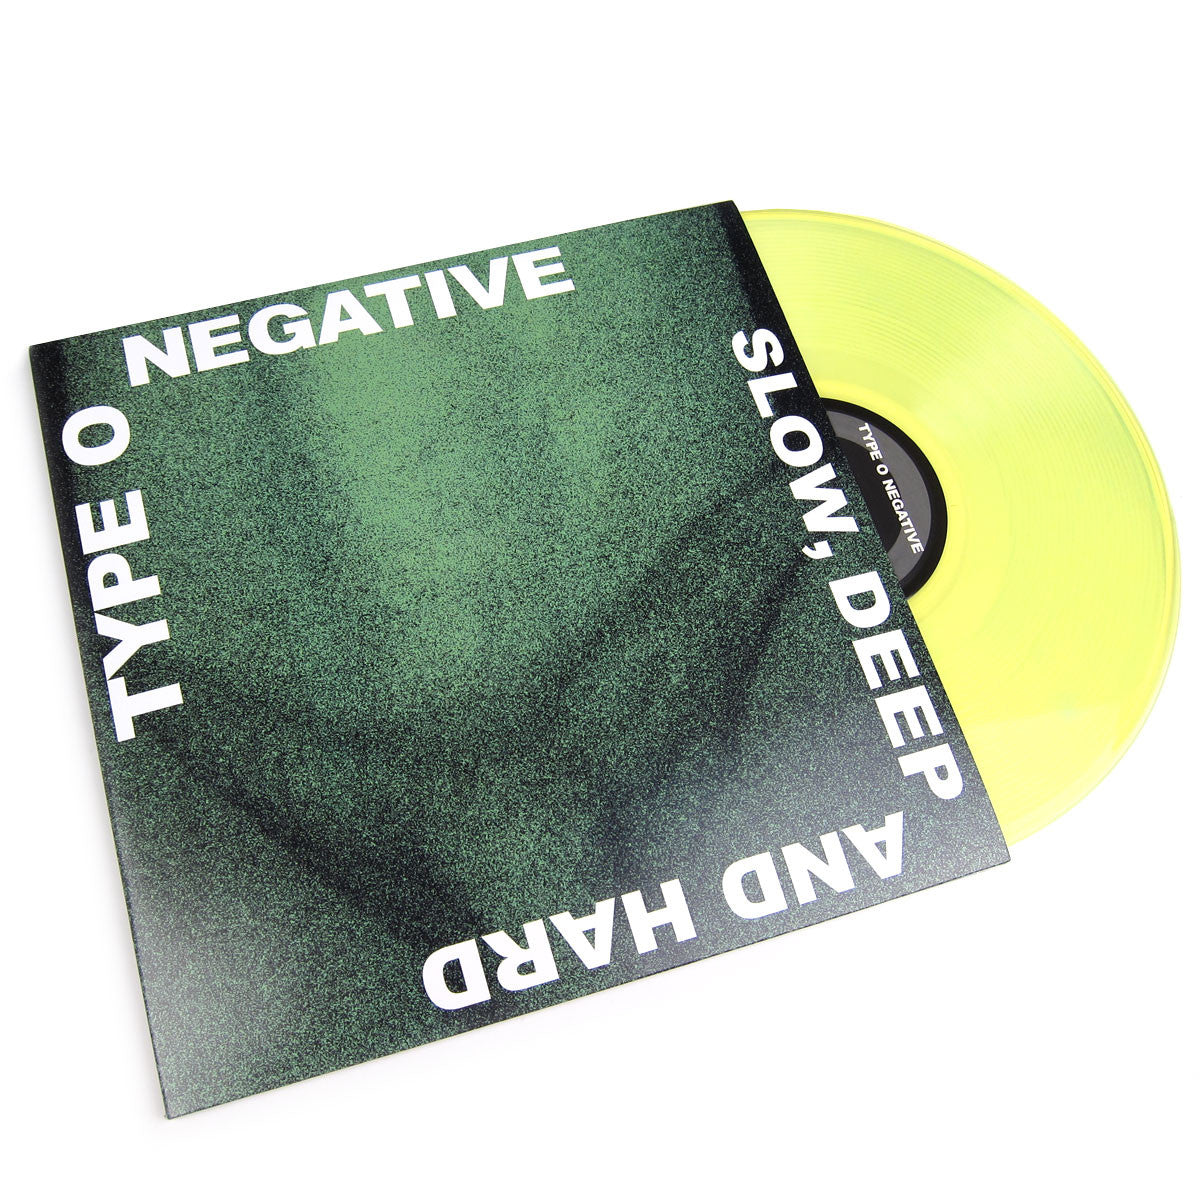 Type O Negative: Slow Deep Hard (180g Green Vinyl) Vinyl 2LP (Record Store Day)